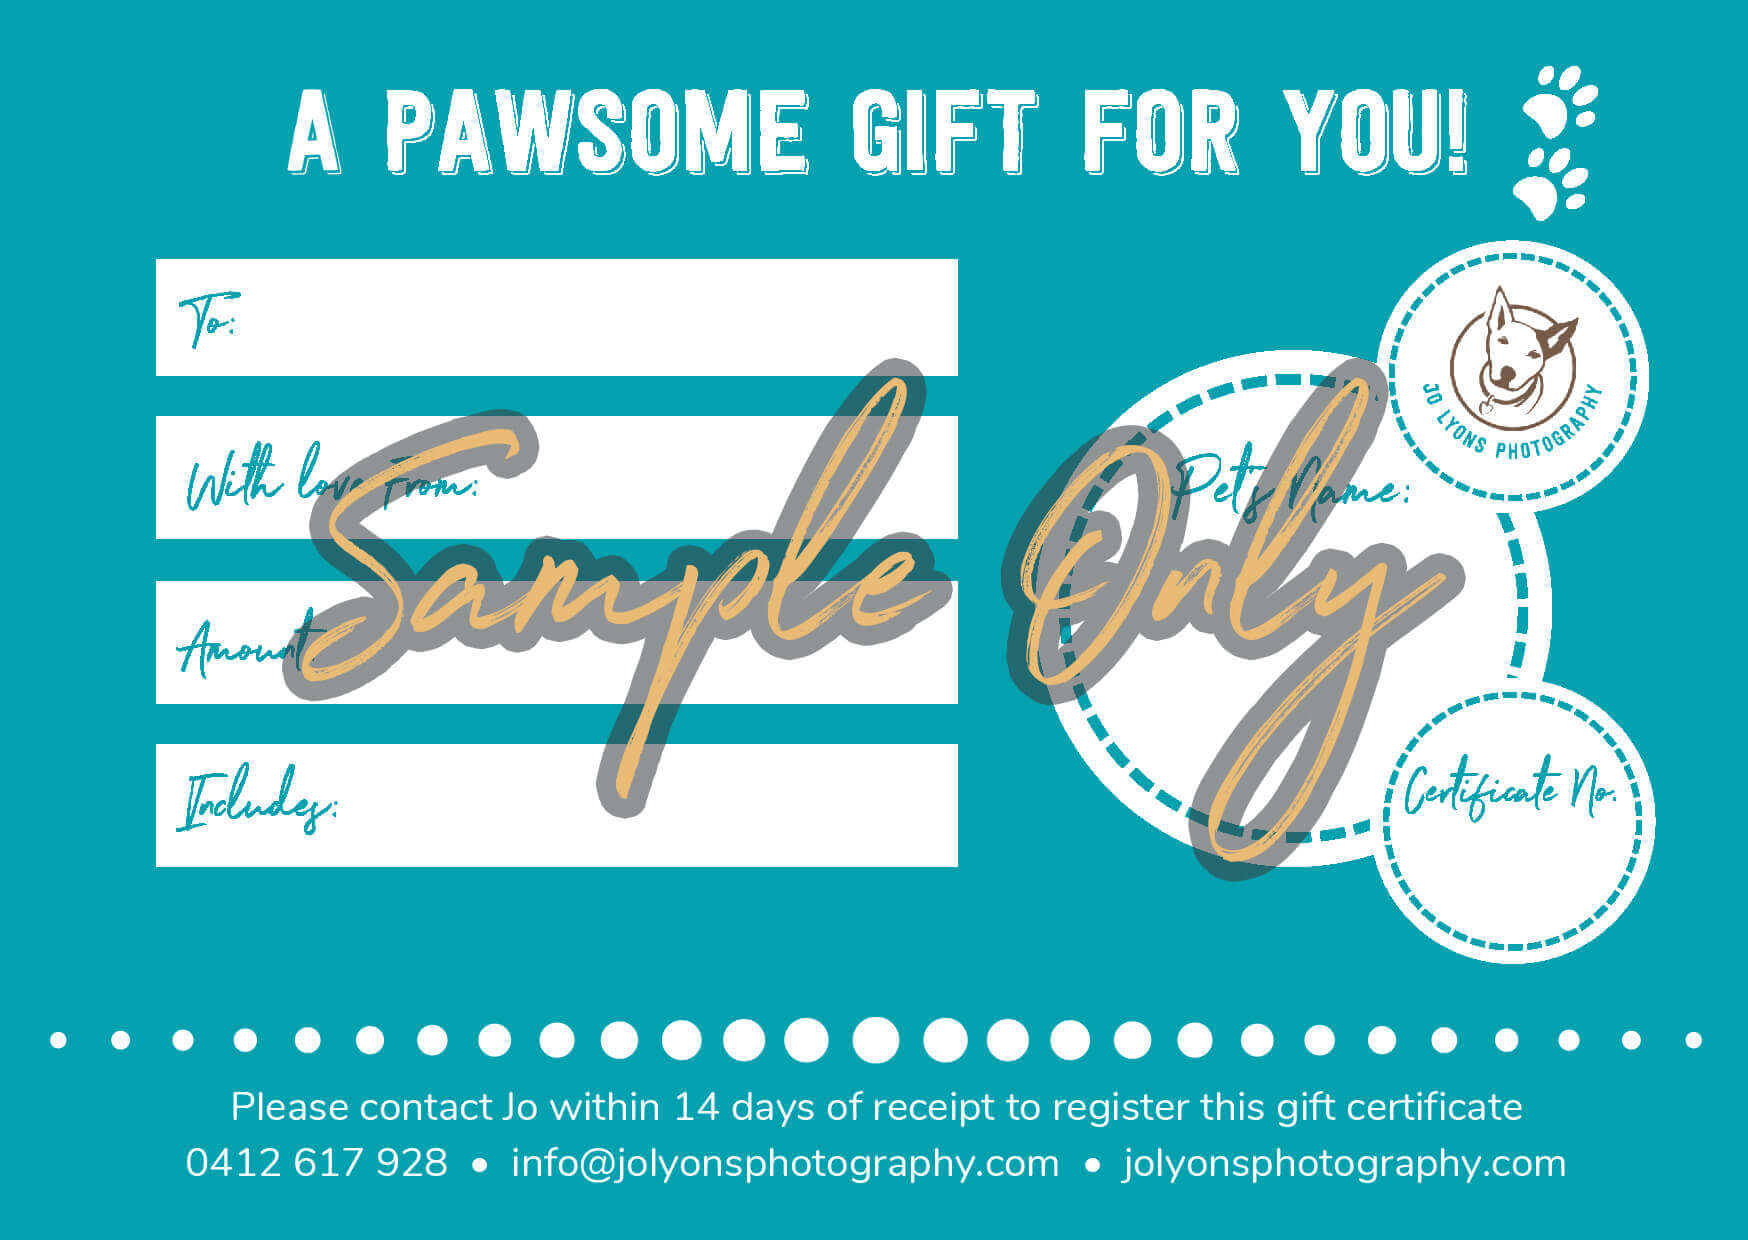 Jo Lyons Photography Gift Certificate Sample - Side 2